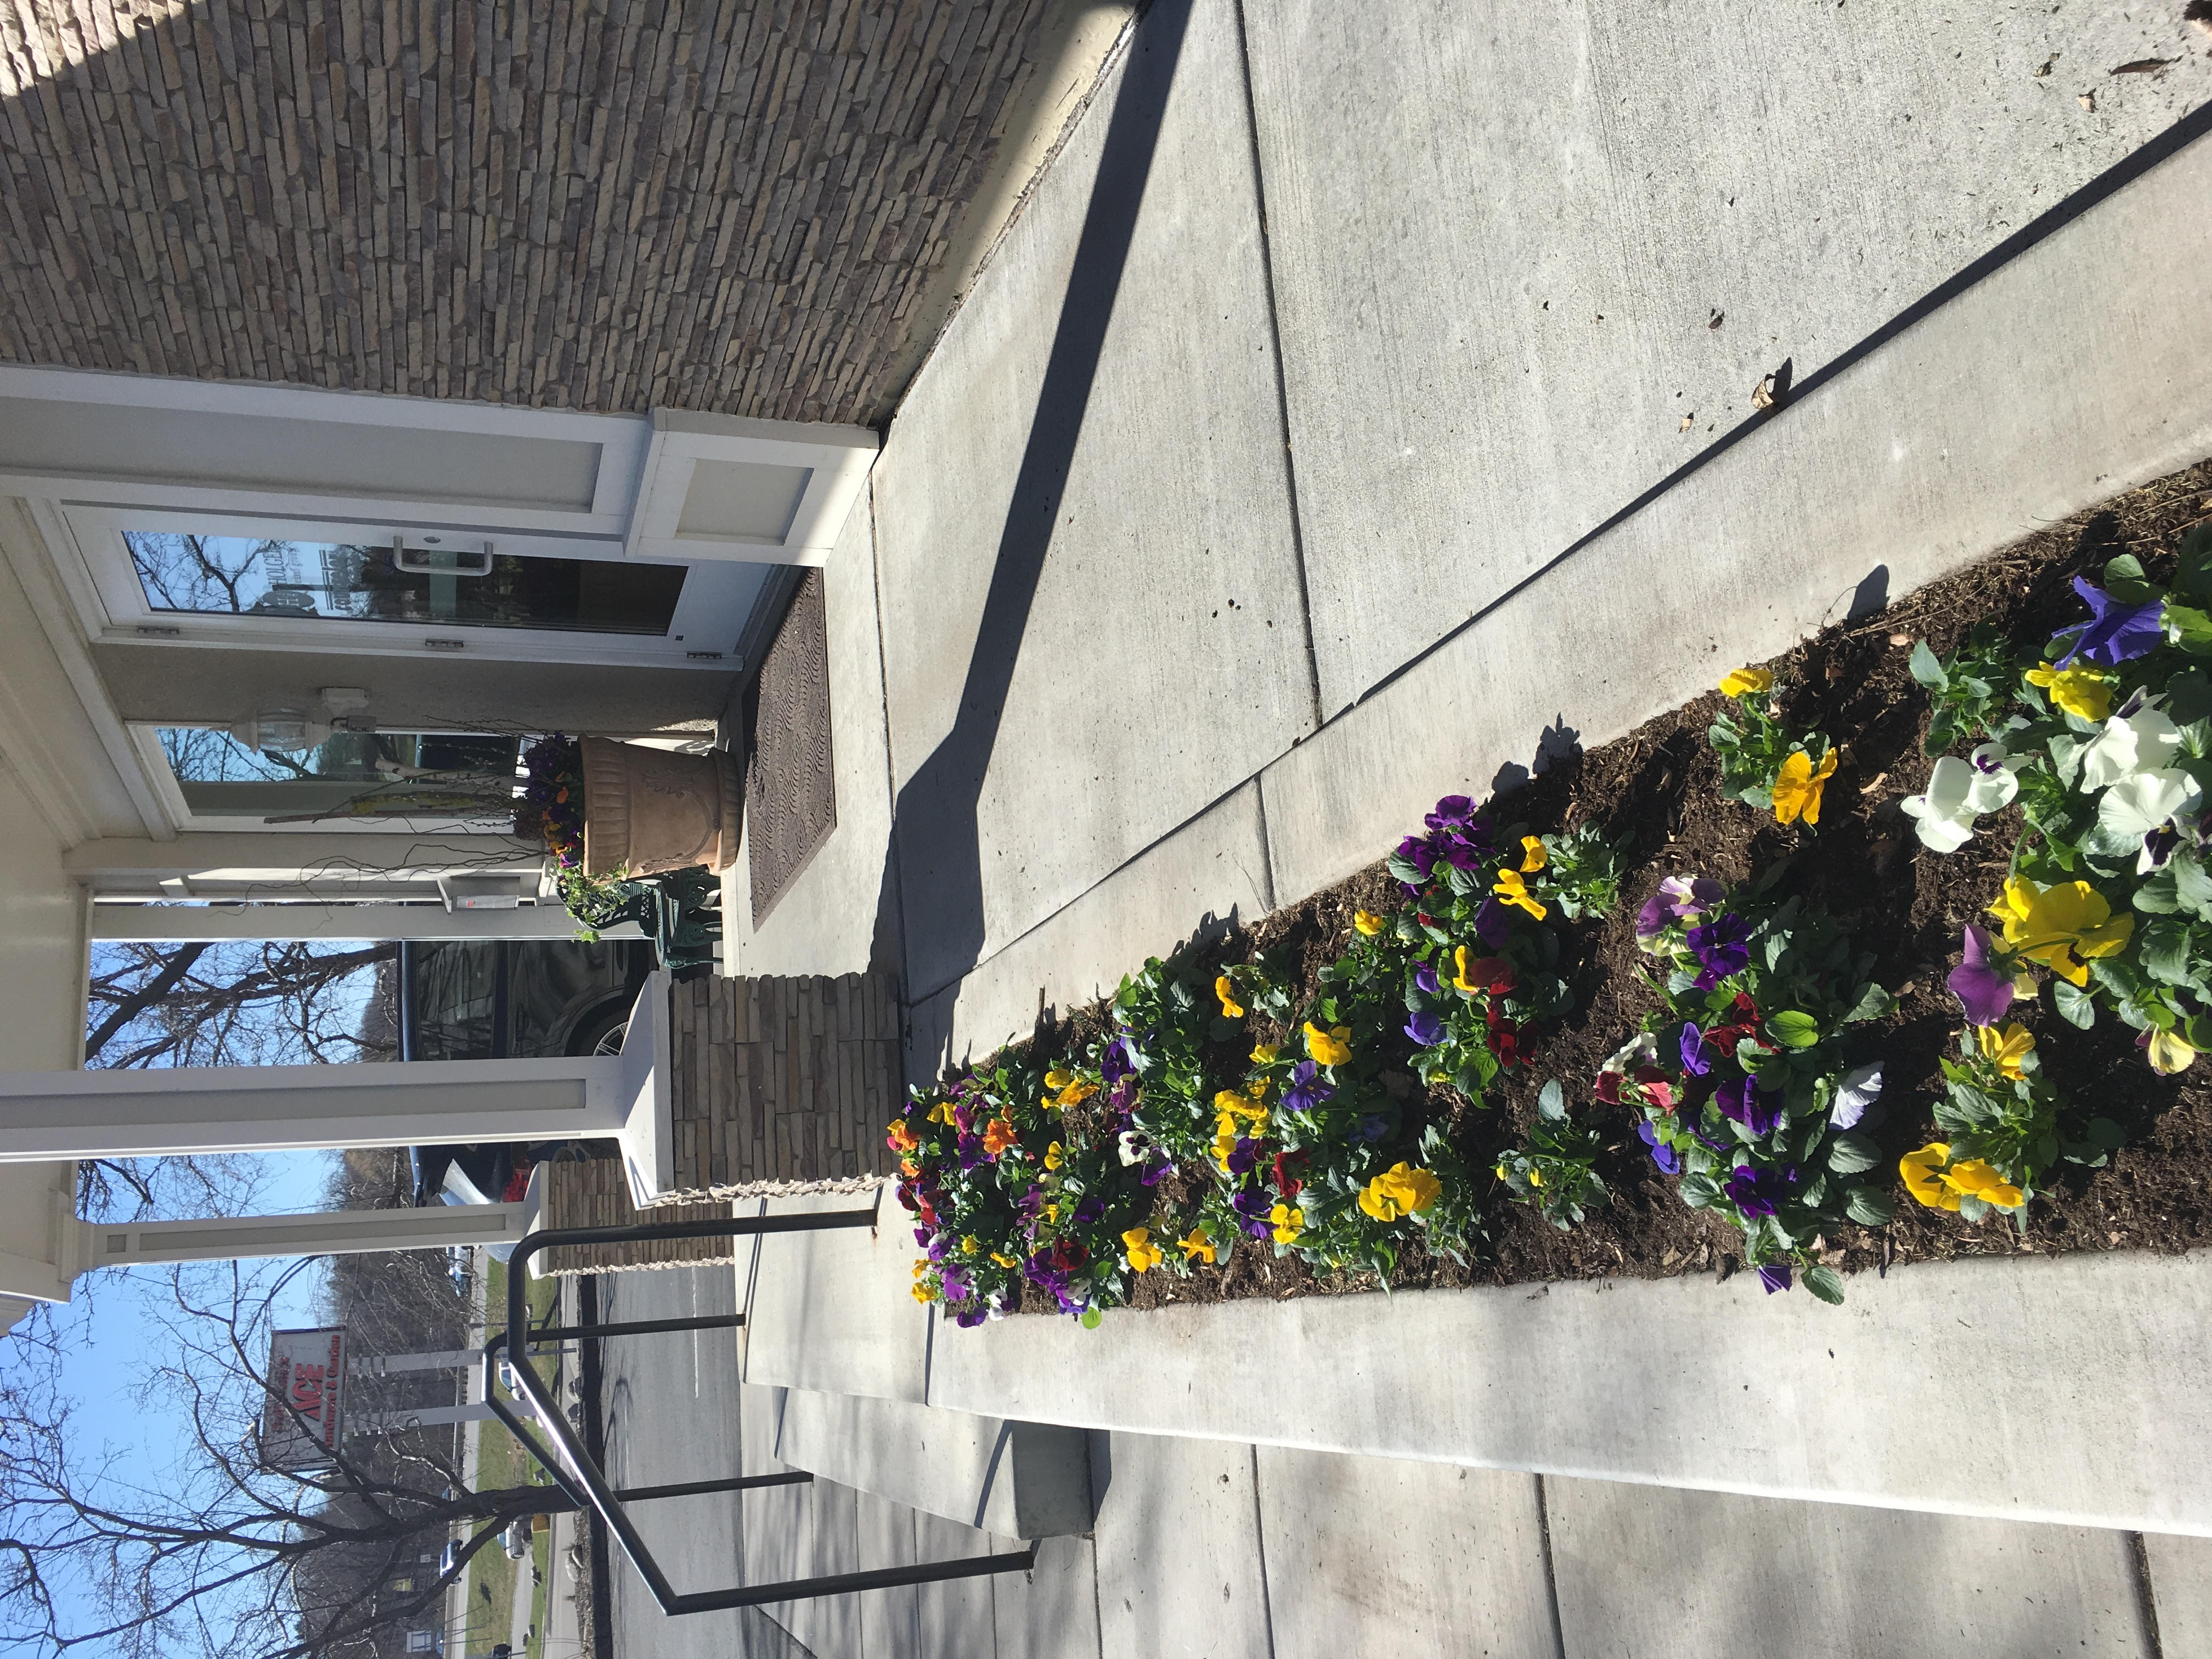 Pansies fill a large planter